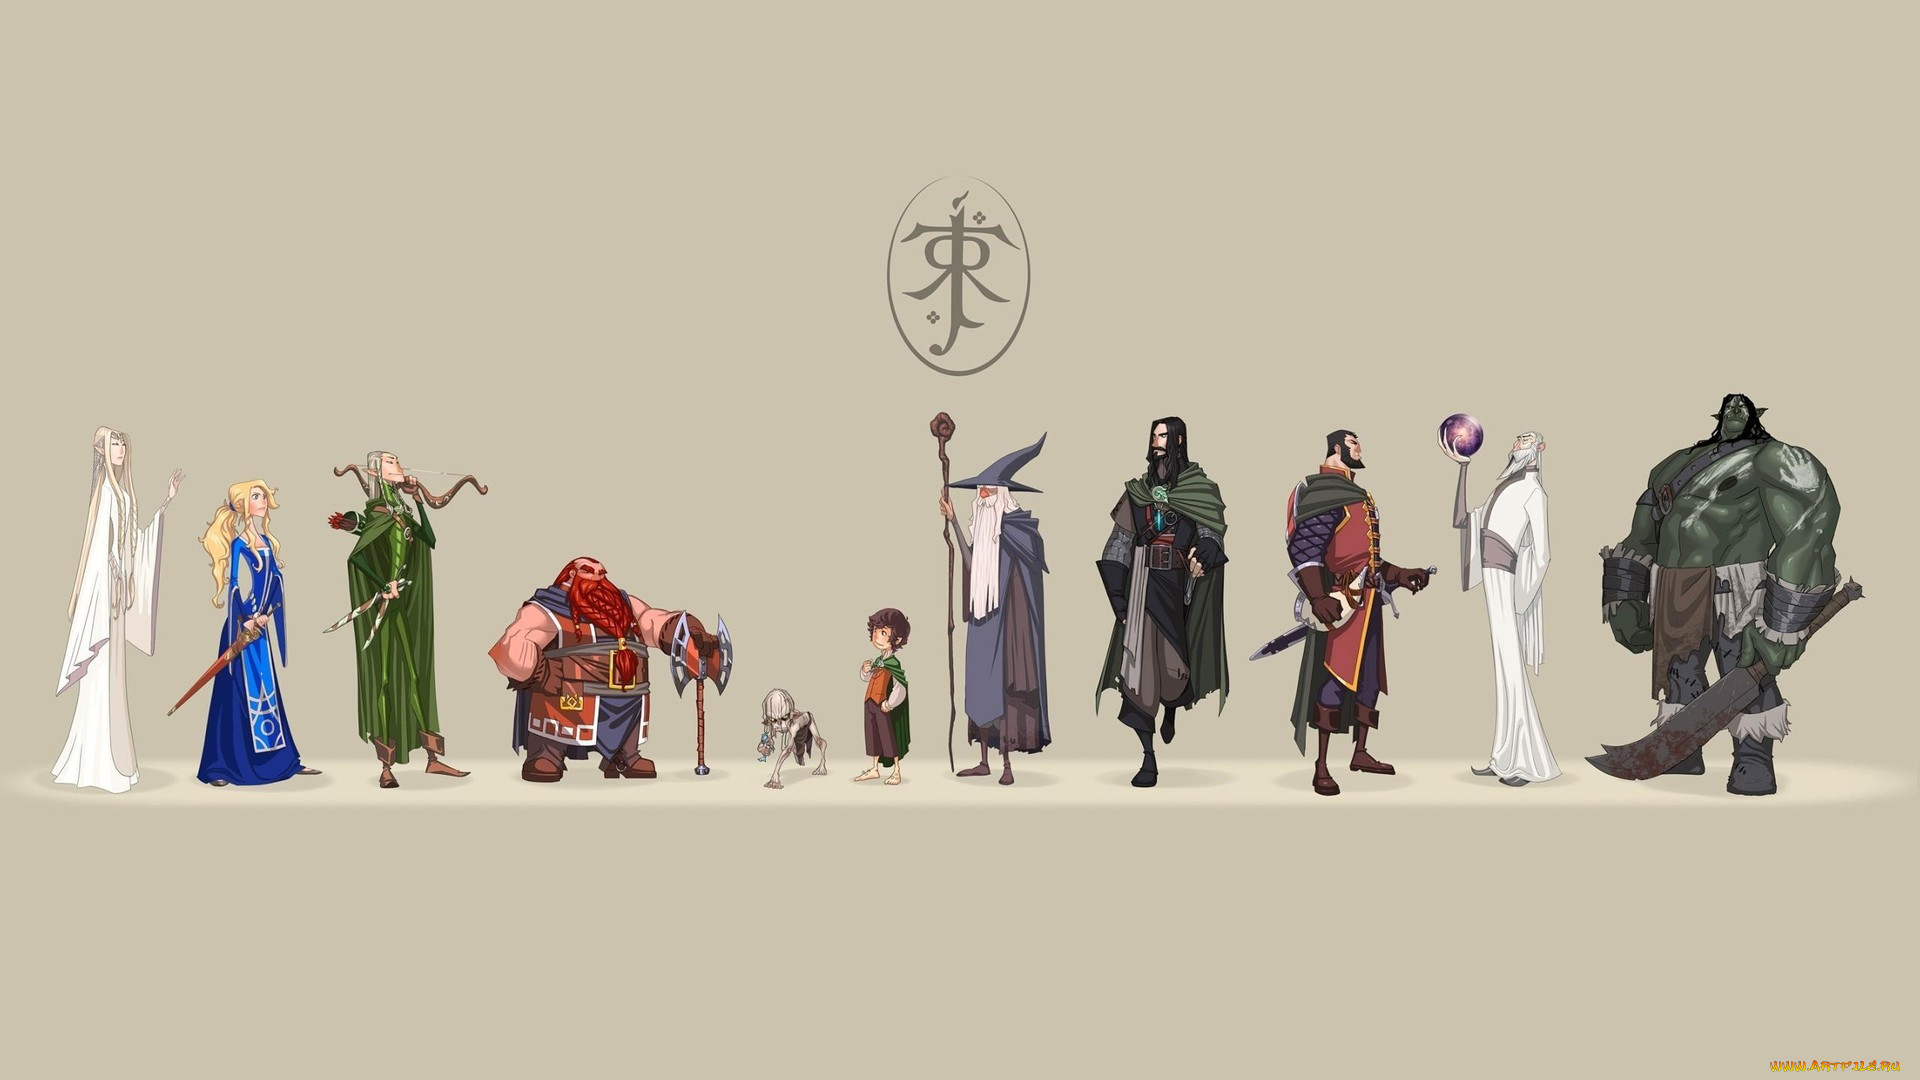 Lord of the rings hentia gallery cartoon pic